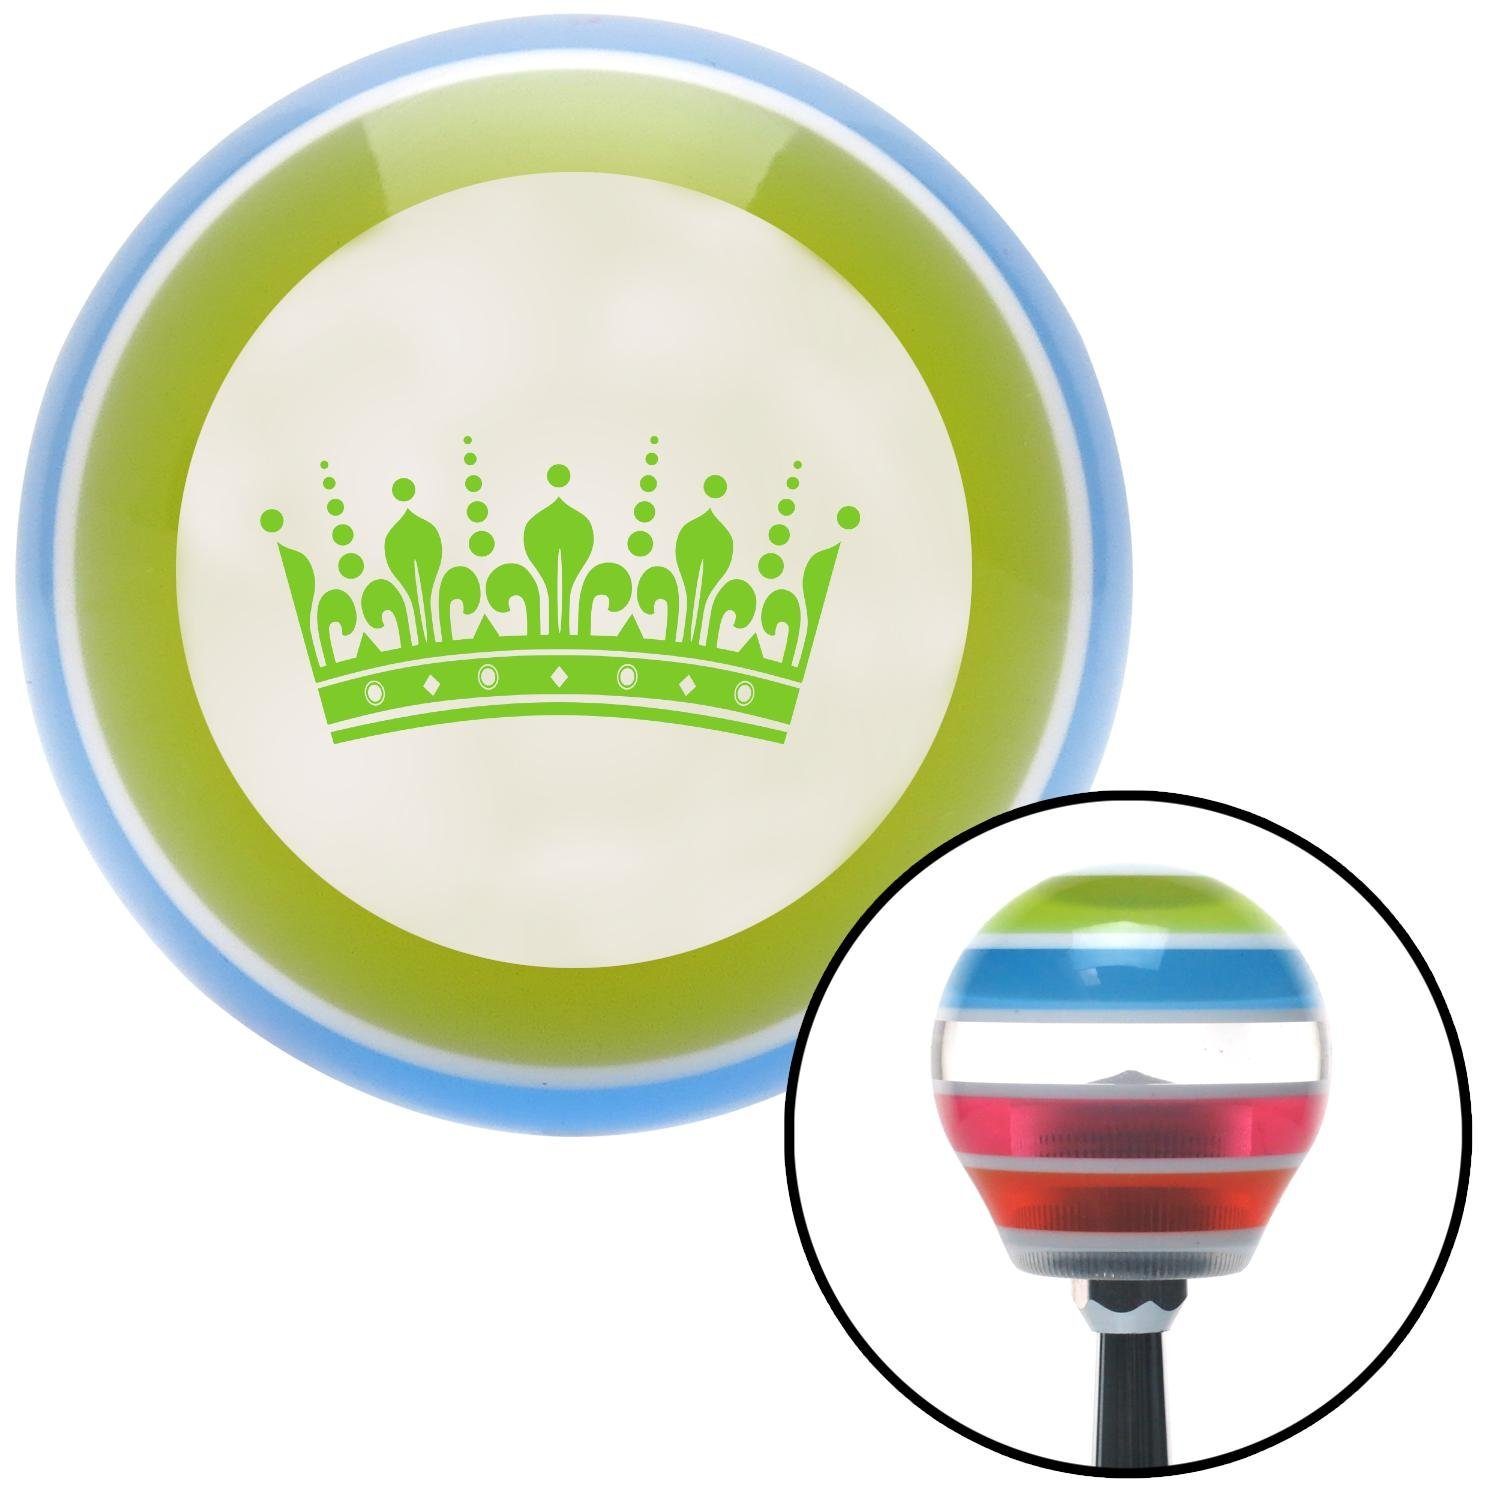 American Shifter 132148 Stripe Shift Knob with M16 x 1.5 Insert Green Kings Crown